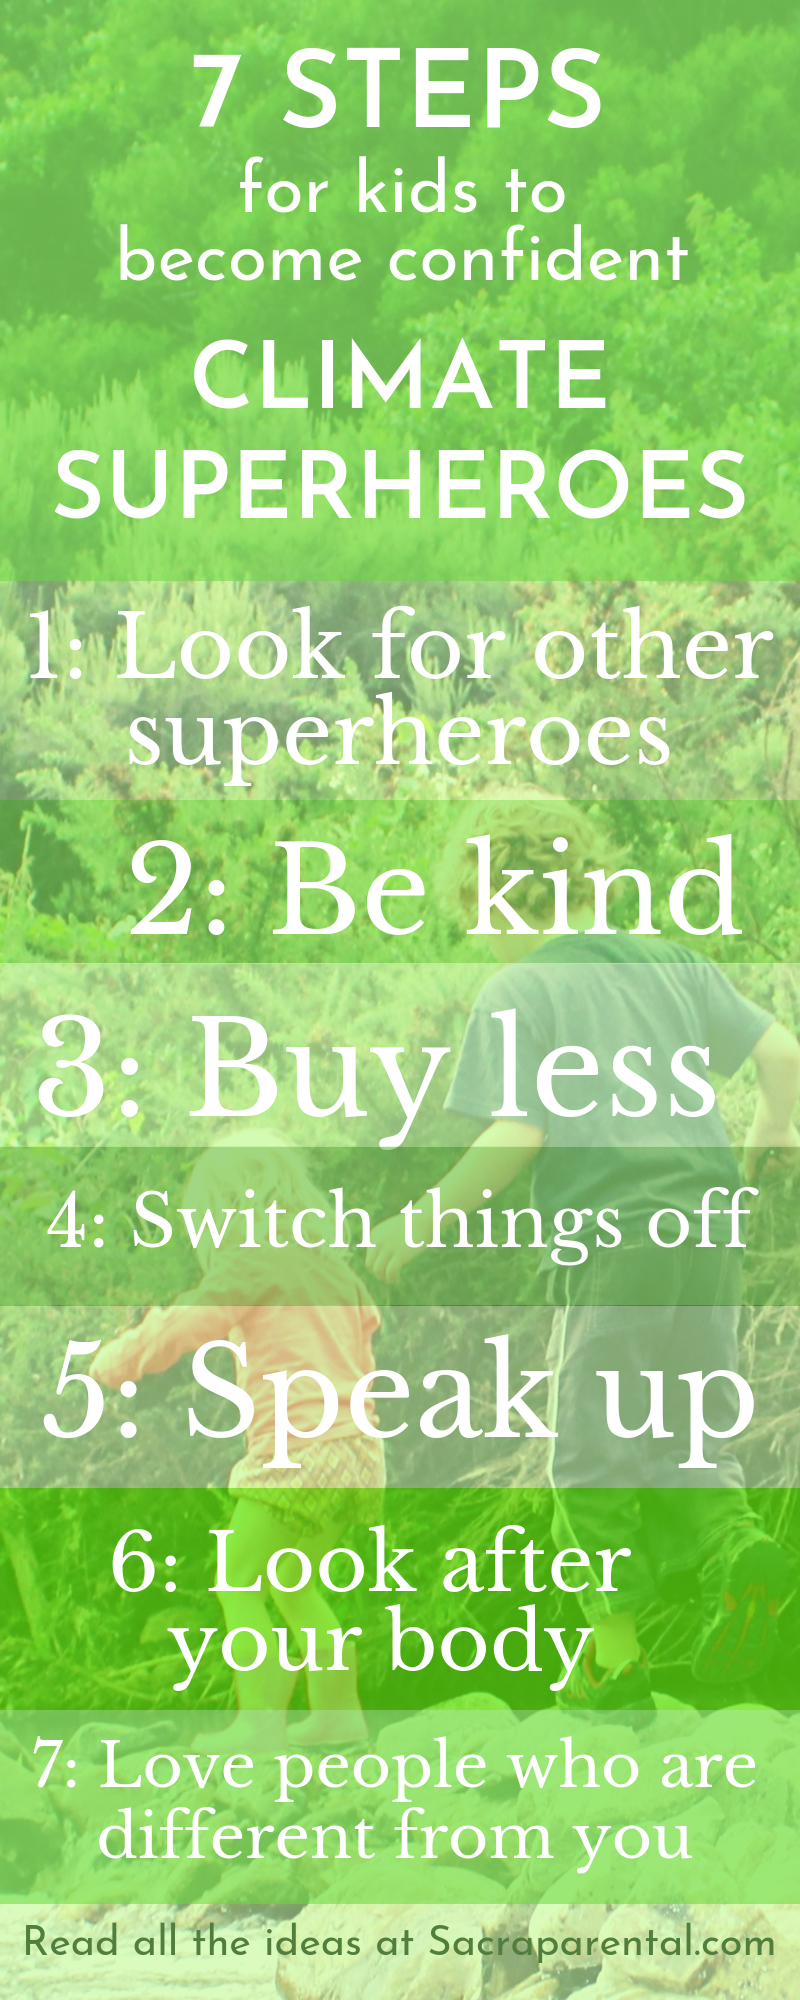 7 steps kids can take to become confident climate superheroes - full text at Sacraparental.com